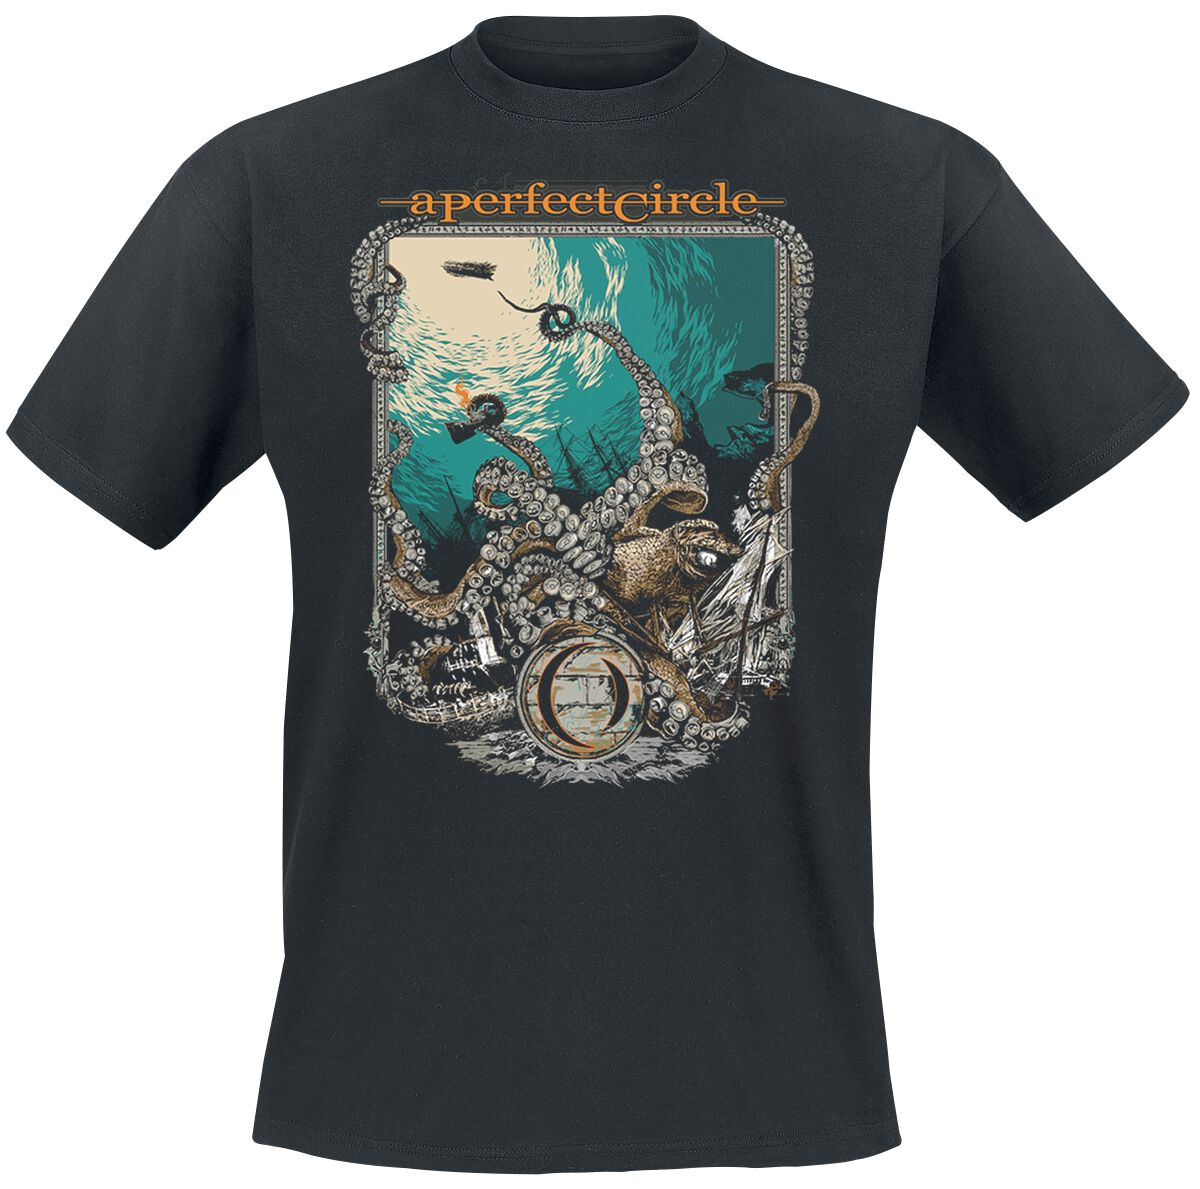 Image of A Perfect Circle The Depths T-Shirt schwarz